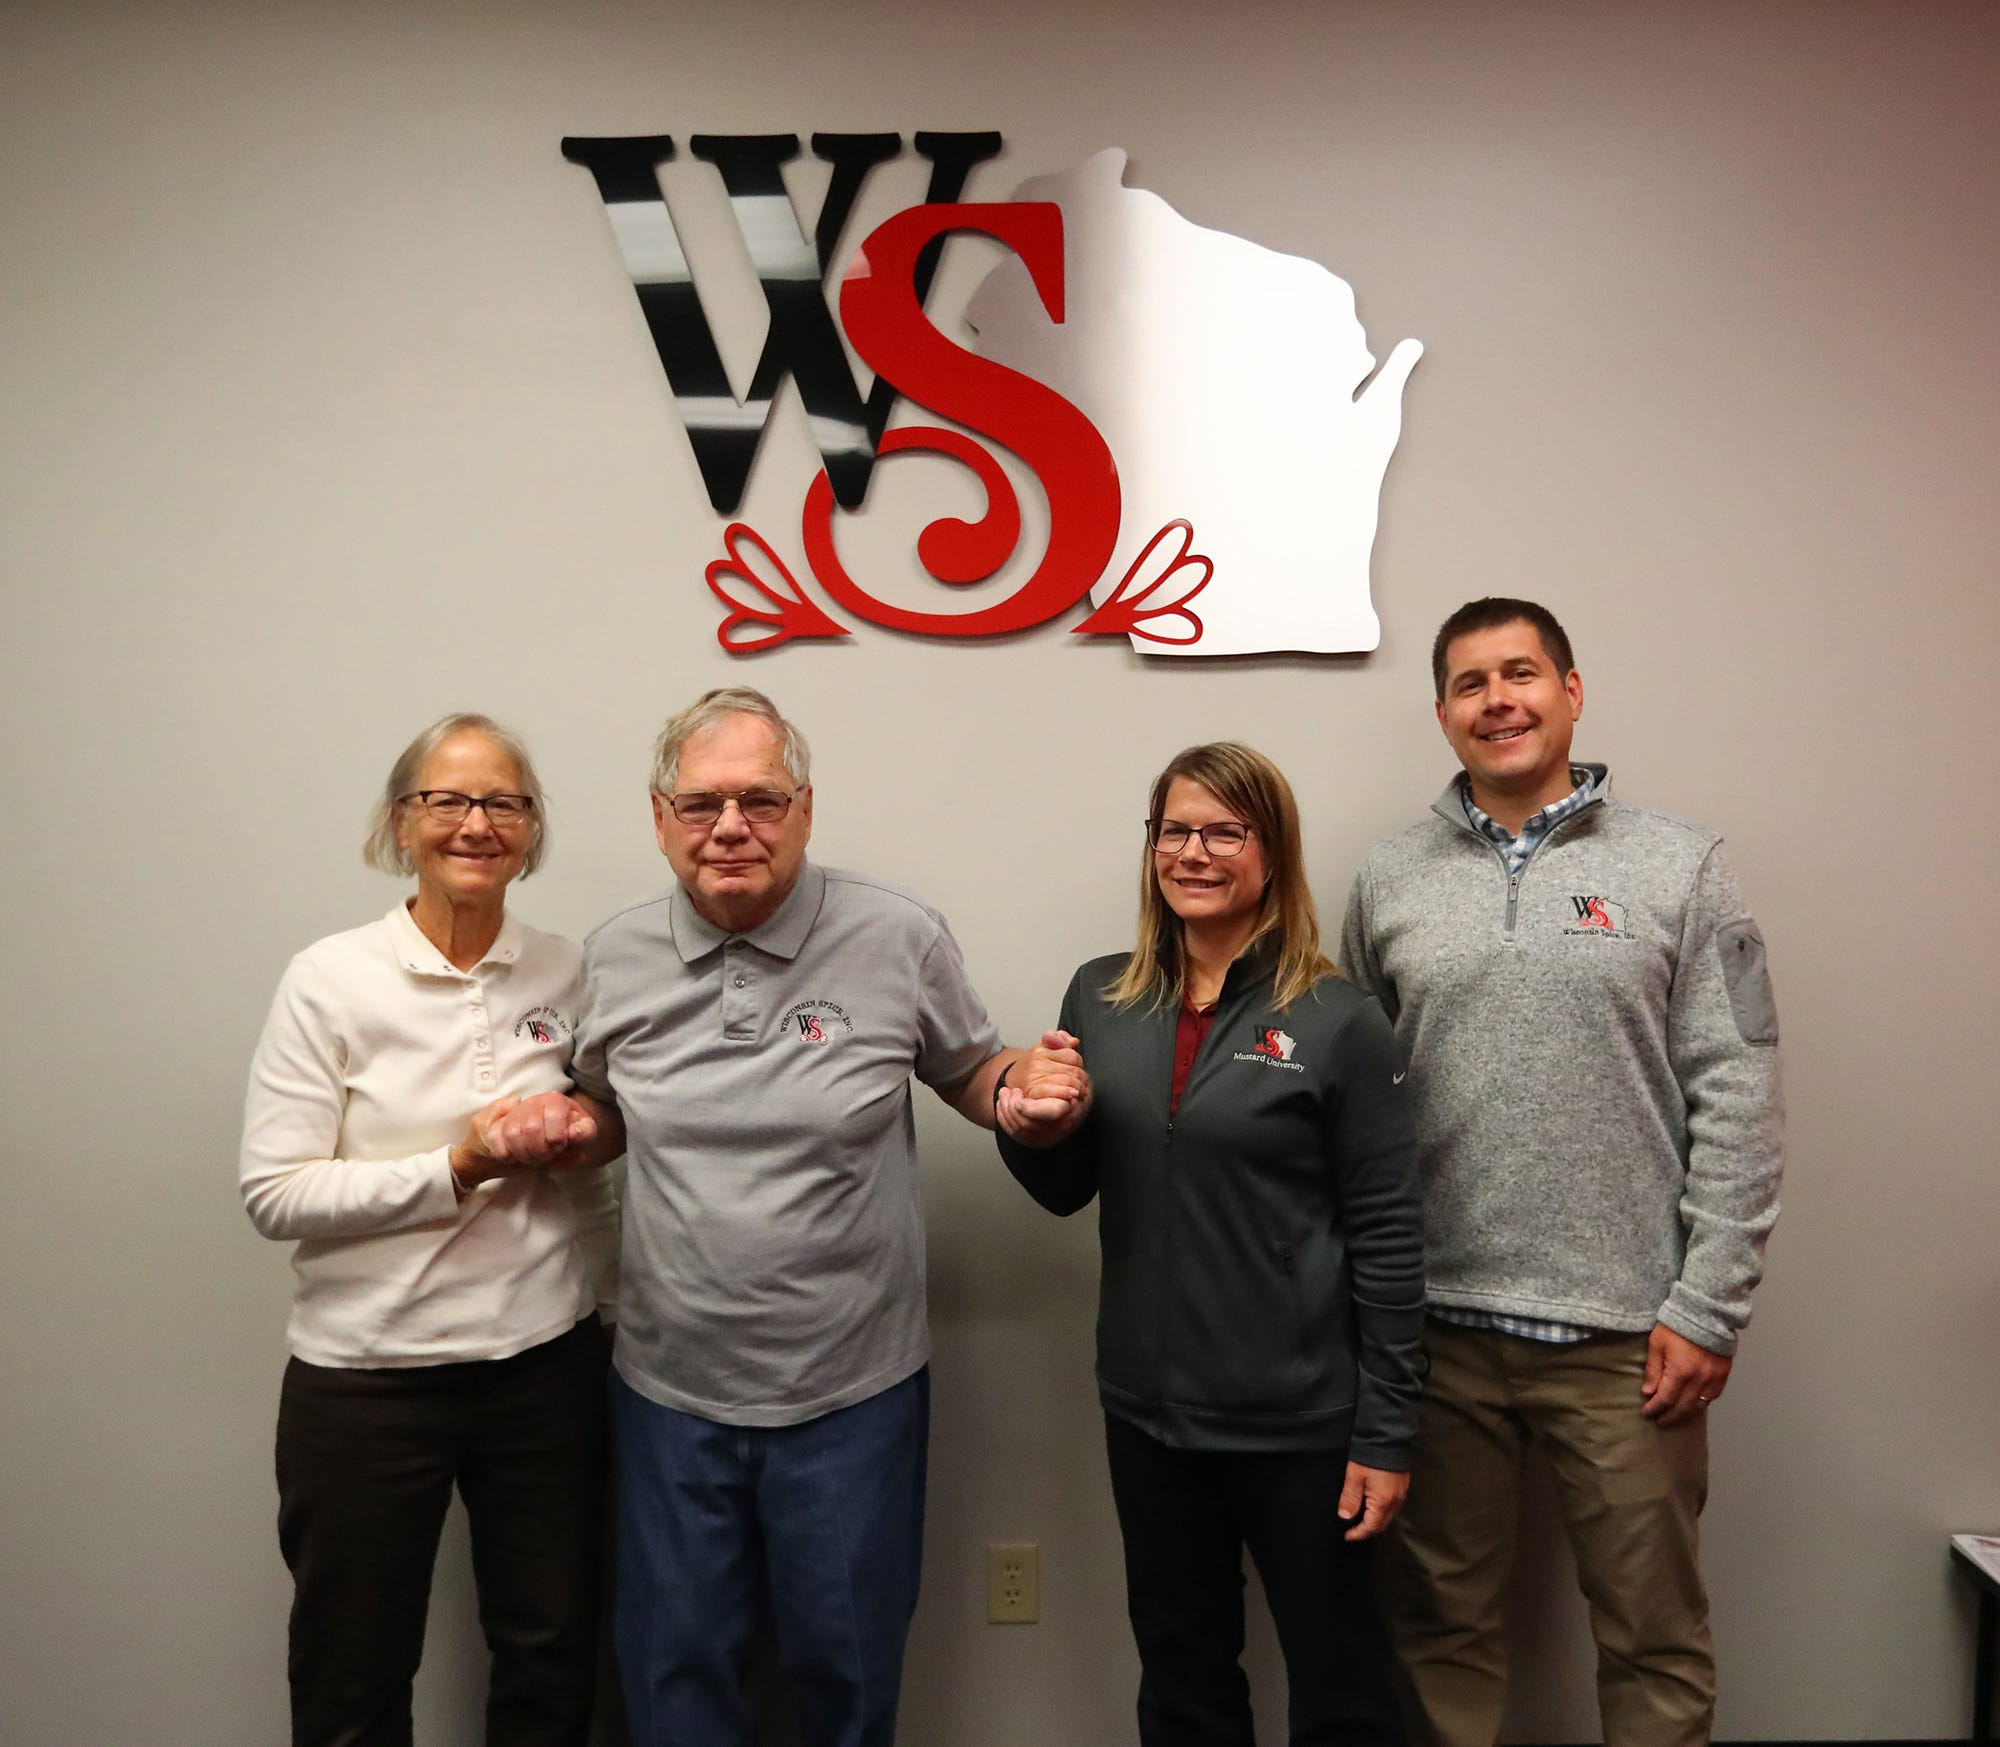 Beth Sass with husband Phillip Sass (Wisconsin Spice Inc. founder) and daughter Caroline Sass-Blustin (vice president) and son Allen Sass (president) at Wisconsin Spice Inc. in Berlin. The family-run company opened in 1973. It operated in a converted feed mill in downtown Berlin before out growing that space and moving to the Berlin Industrial Park.